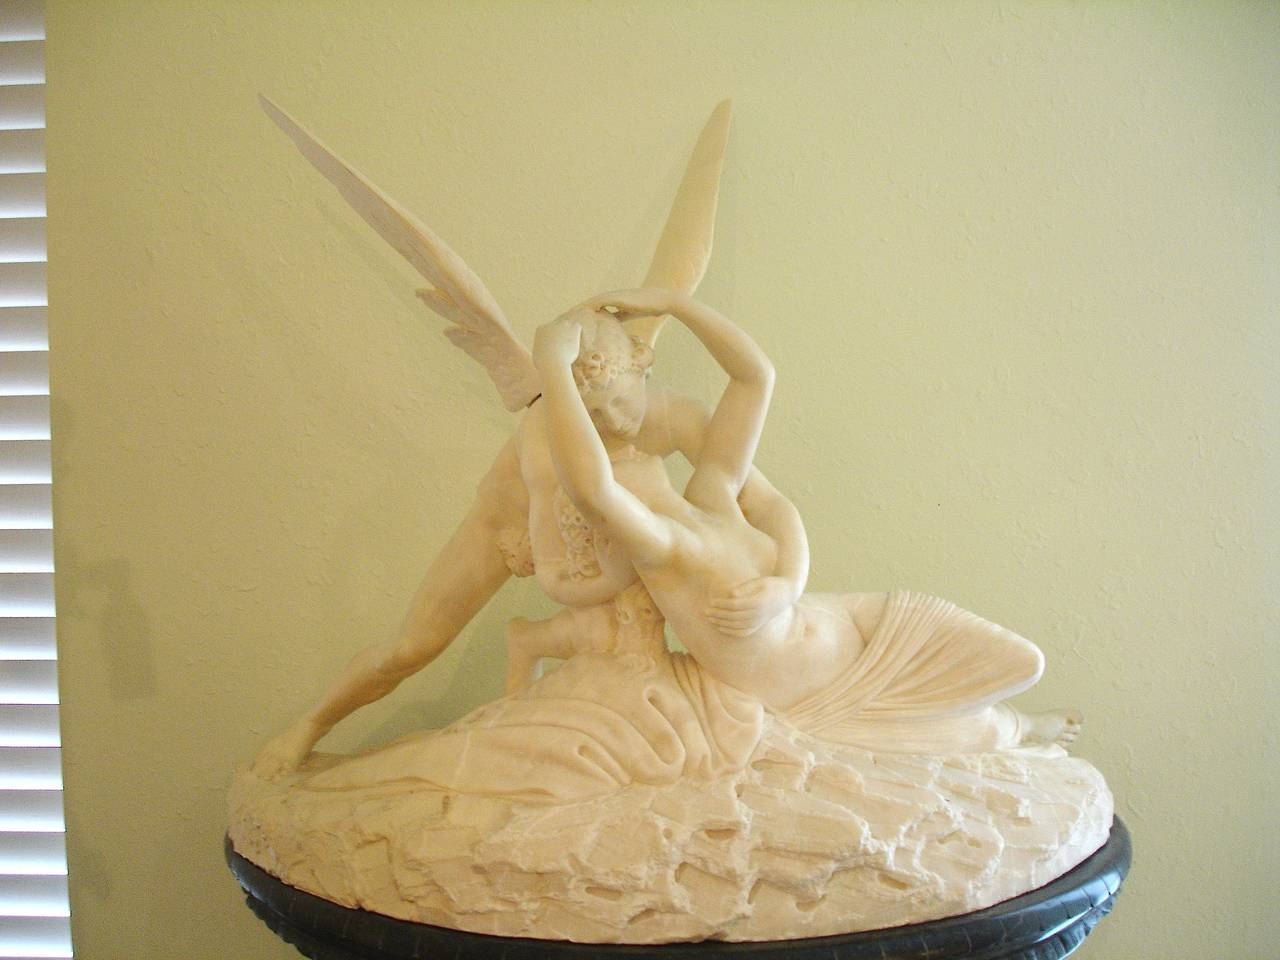 Hand-Carved Palatial Marble Sculpture By Barzanti.  'Cupid's Kiss' on Marble Pedestal For Sale